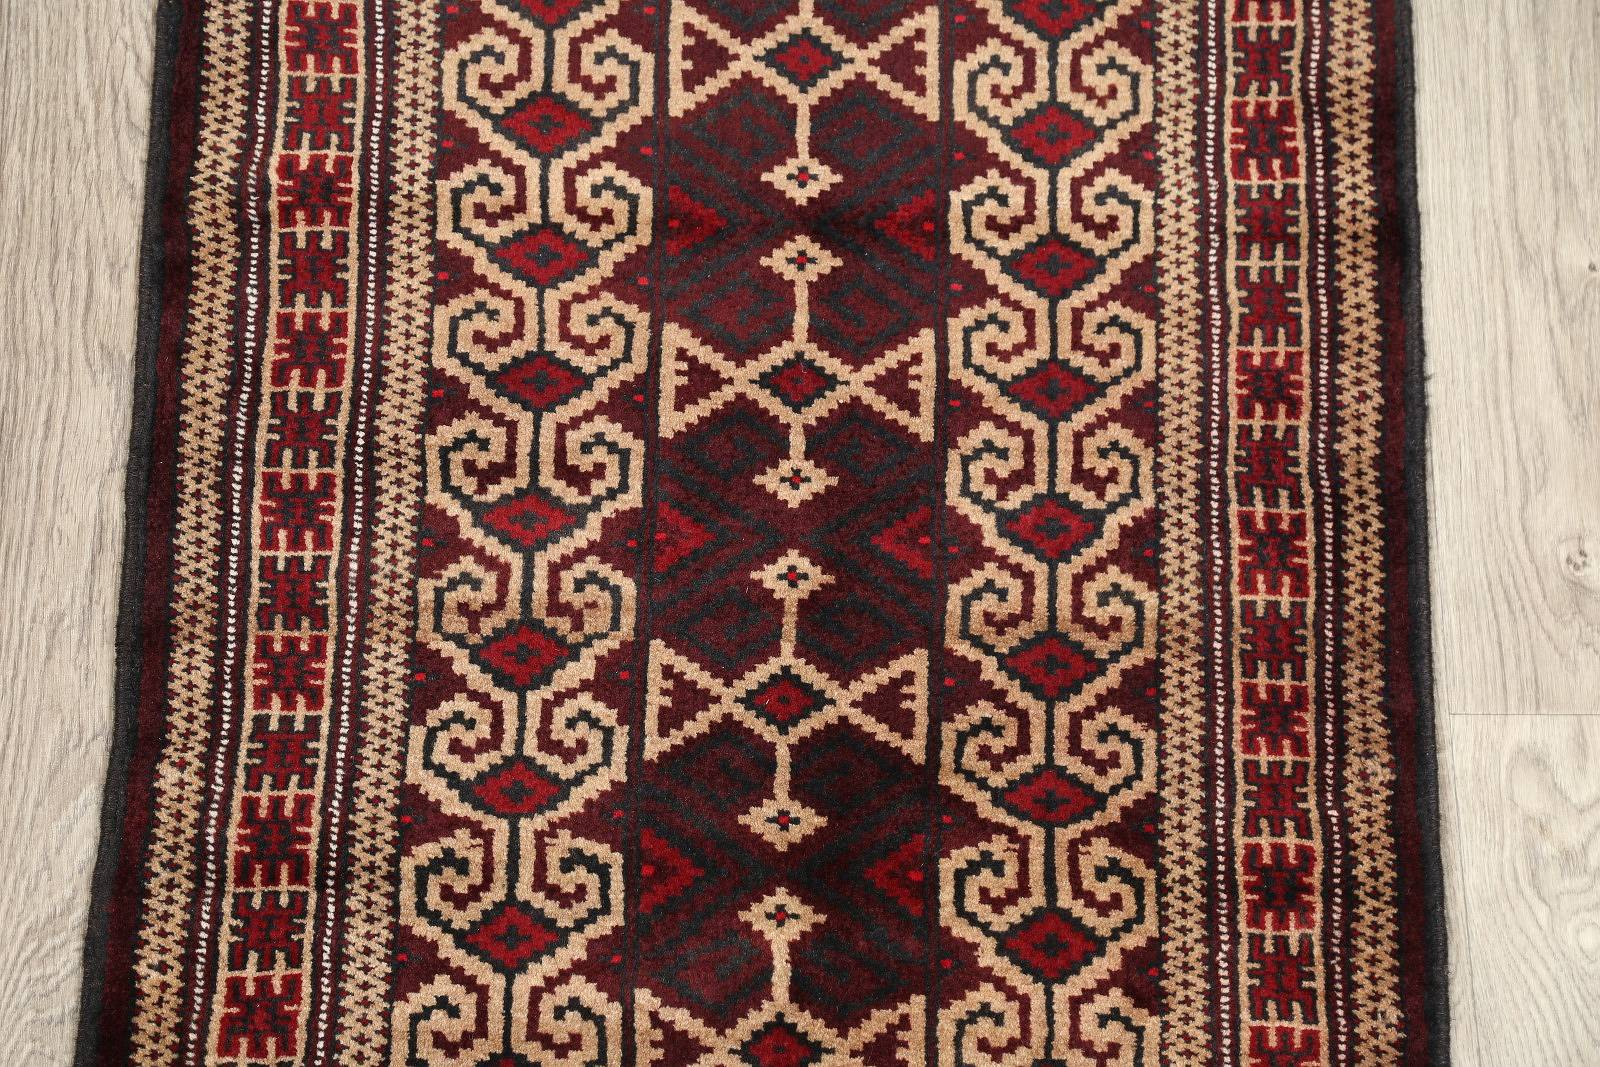 Geometric 3x4 Turkoman Persian Area Rug